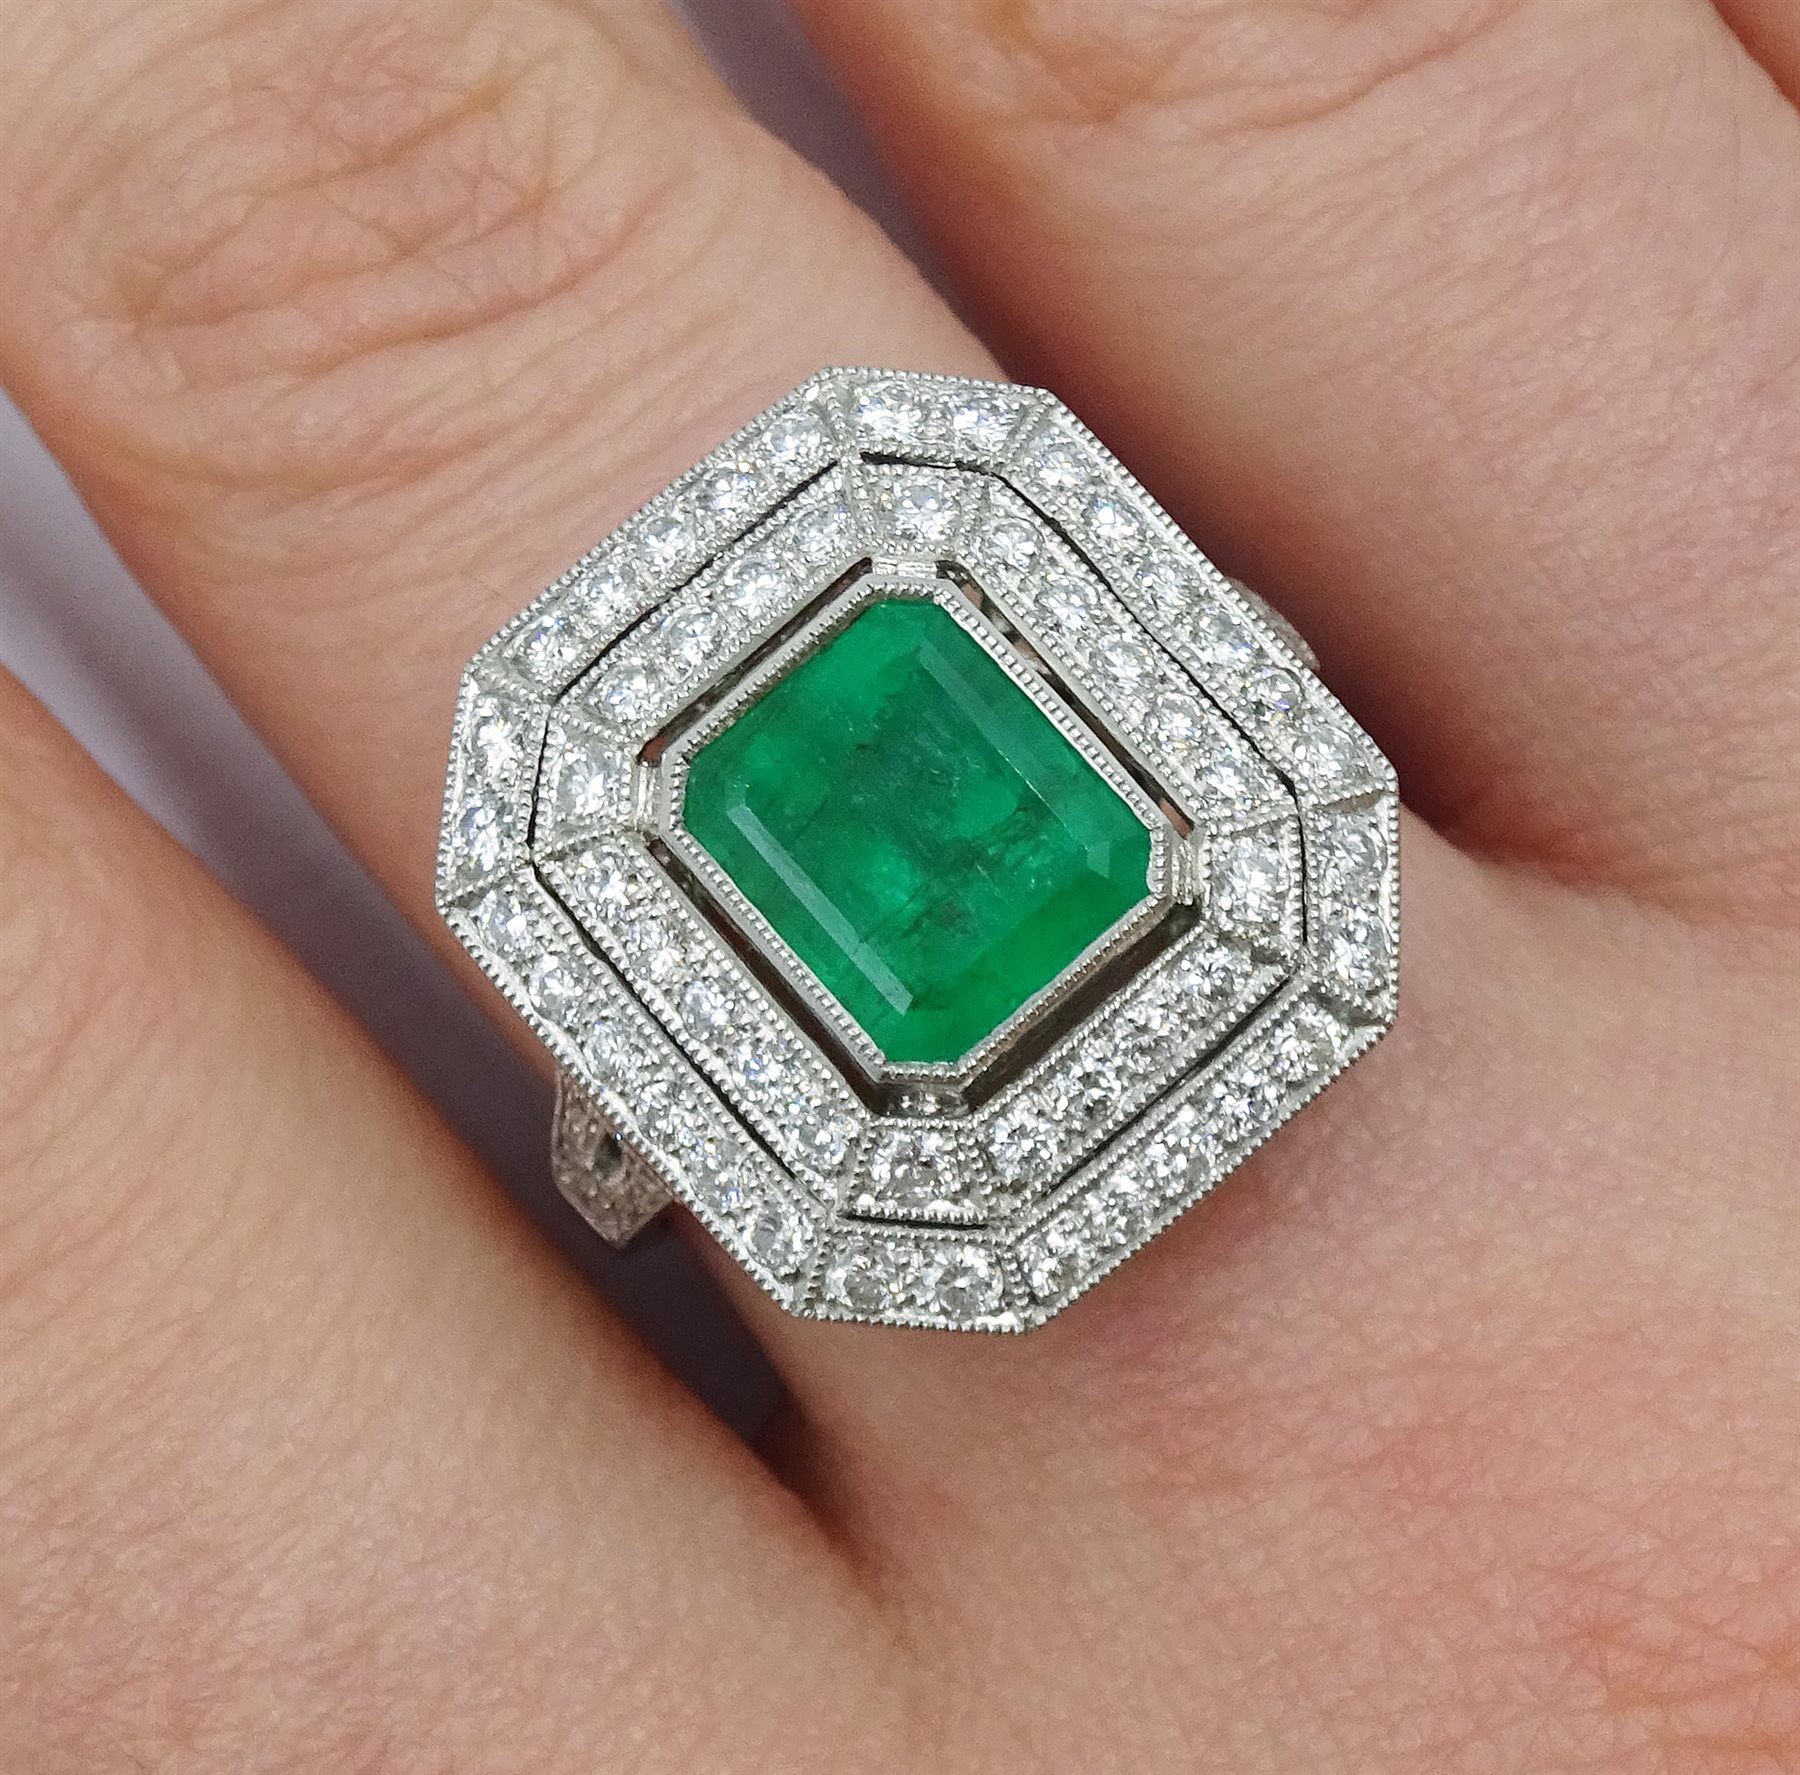 Platinum emerald and double row diamond ring, with diamond set shoulders, emerald approx 1.85 carat, - Image 2 of 5